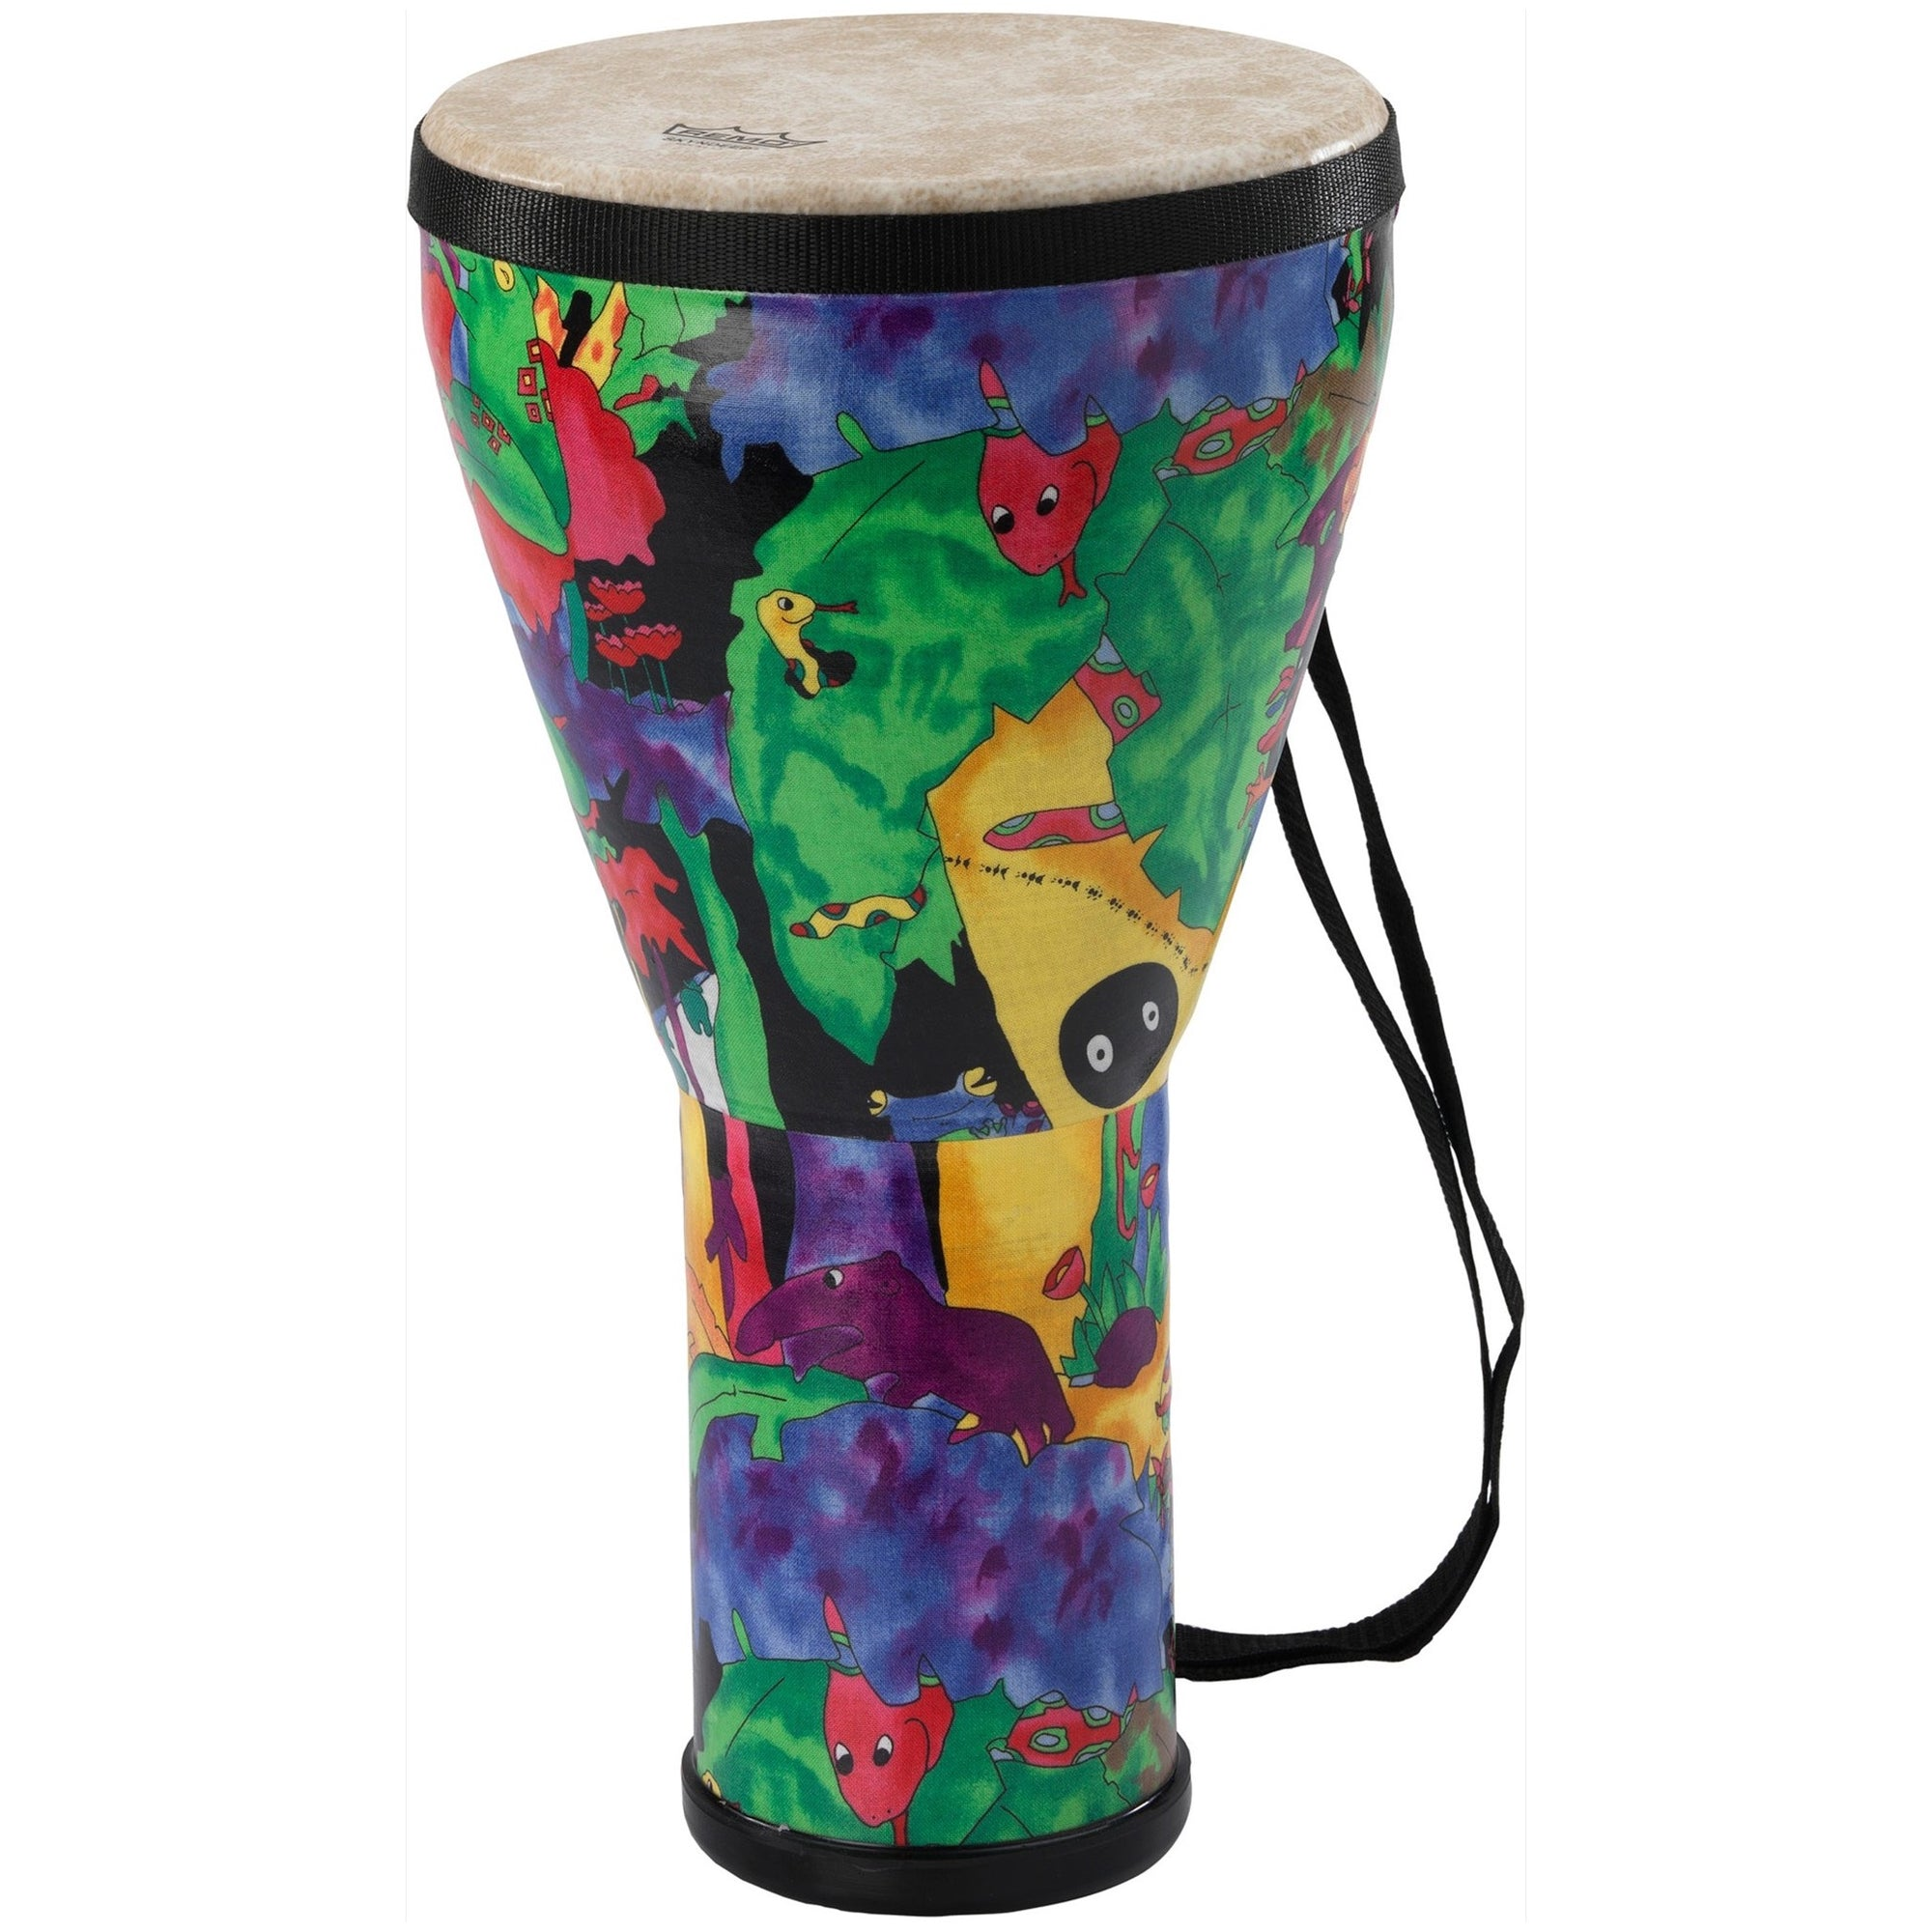 Remo Kids Percussion Djembe, Rain Forest, 8 Inch